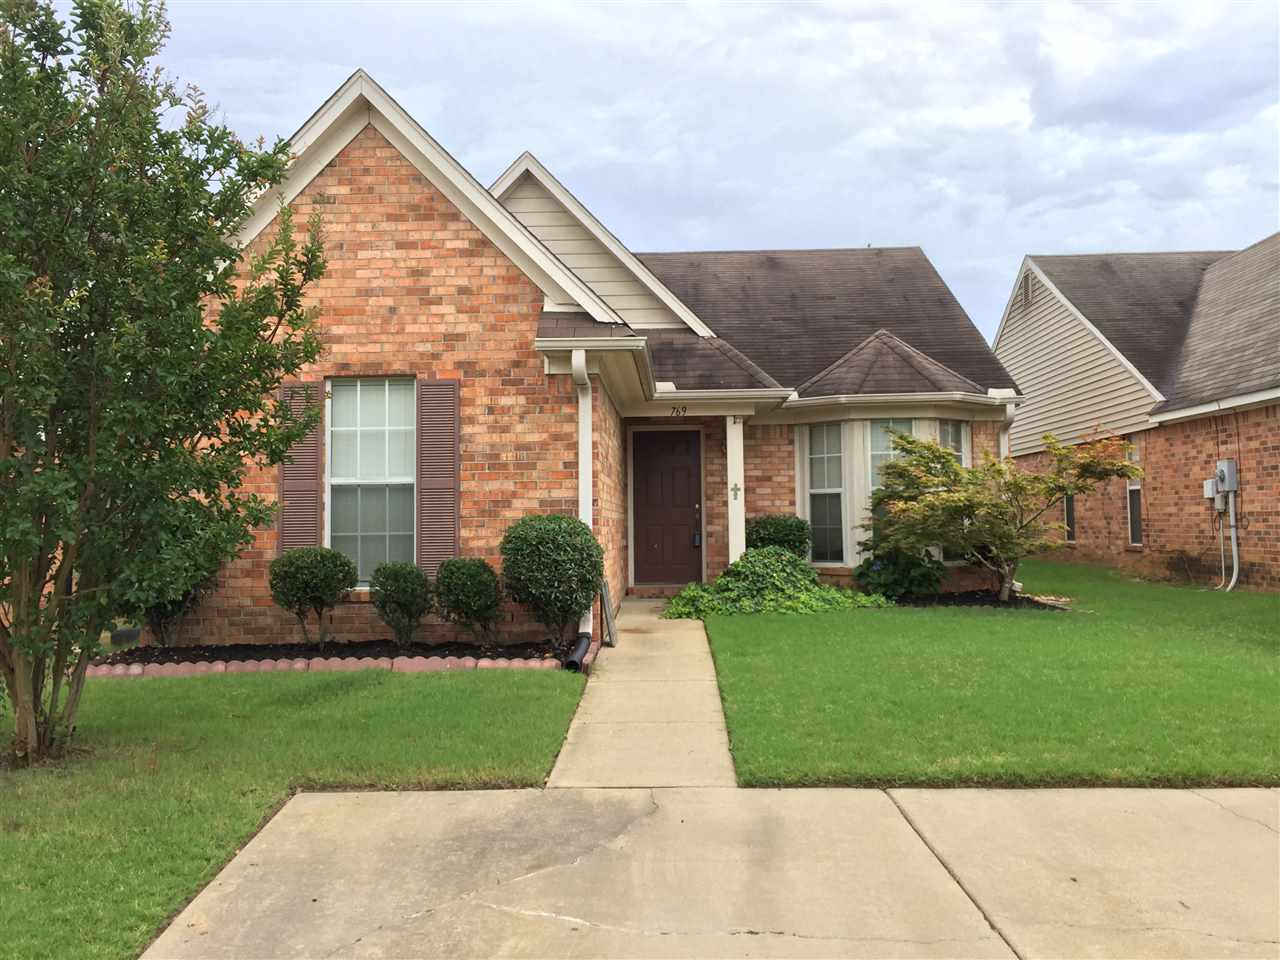 769 GRANT DR, Southaven, MS 38671